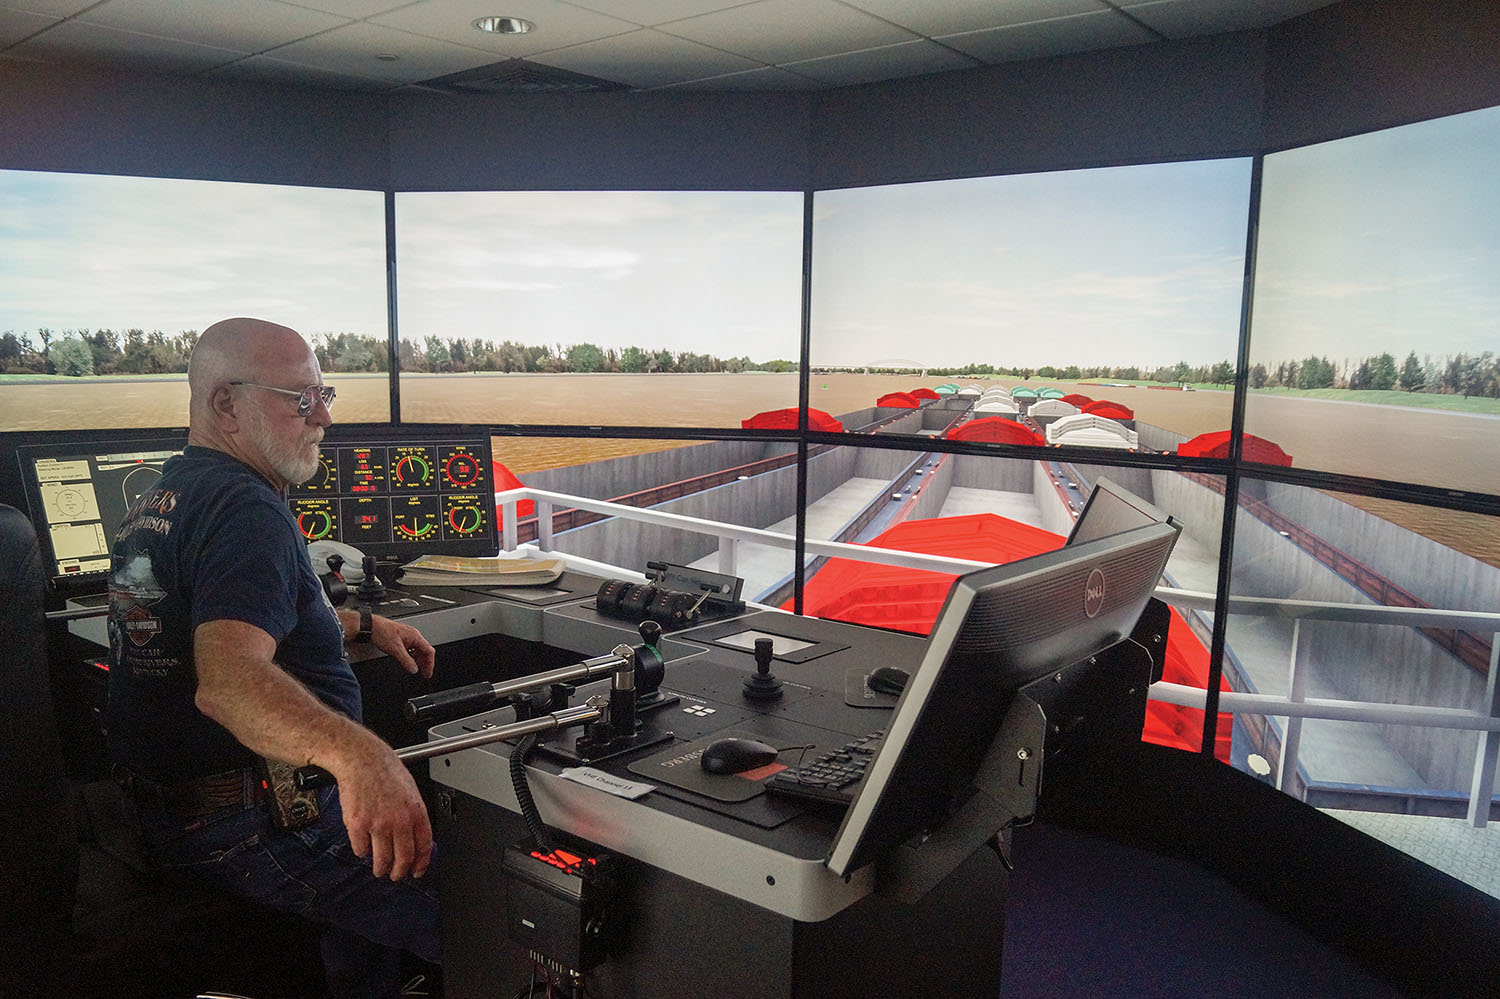 Capt. Don Ryan pilots a simulated towboat near where the Kentucky Transportation Cabinet plans to build a new Interstate 69 bridge connecting Henderson, Ky., with Evansville, Ind. Seamen's Church Institute simulations have helped bridge designers choose appropriate bridge alignments and pier placements to improve safety on the waterways. (Photo by Keith Todd/Kentucky Transportation Cabinet(